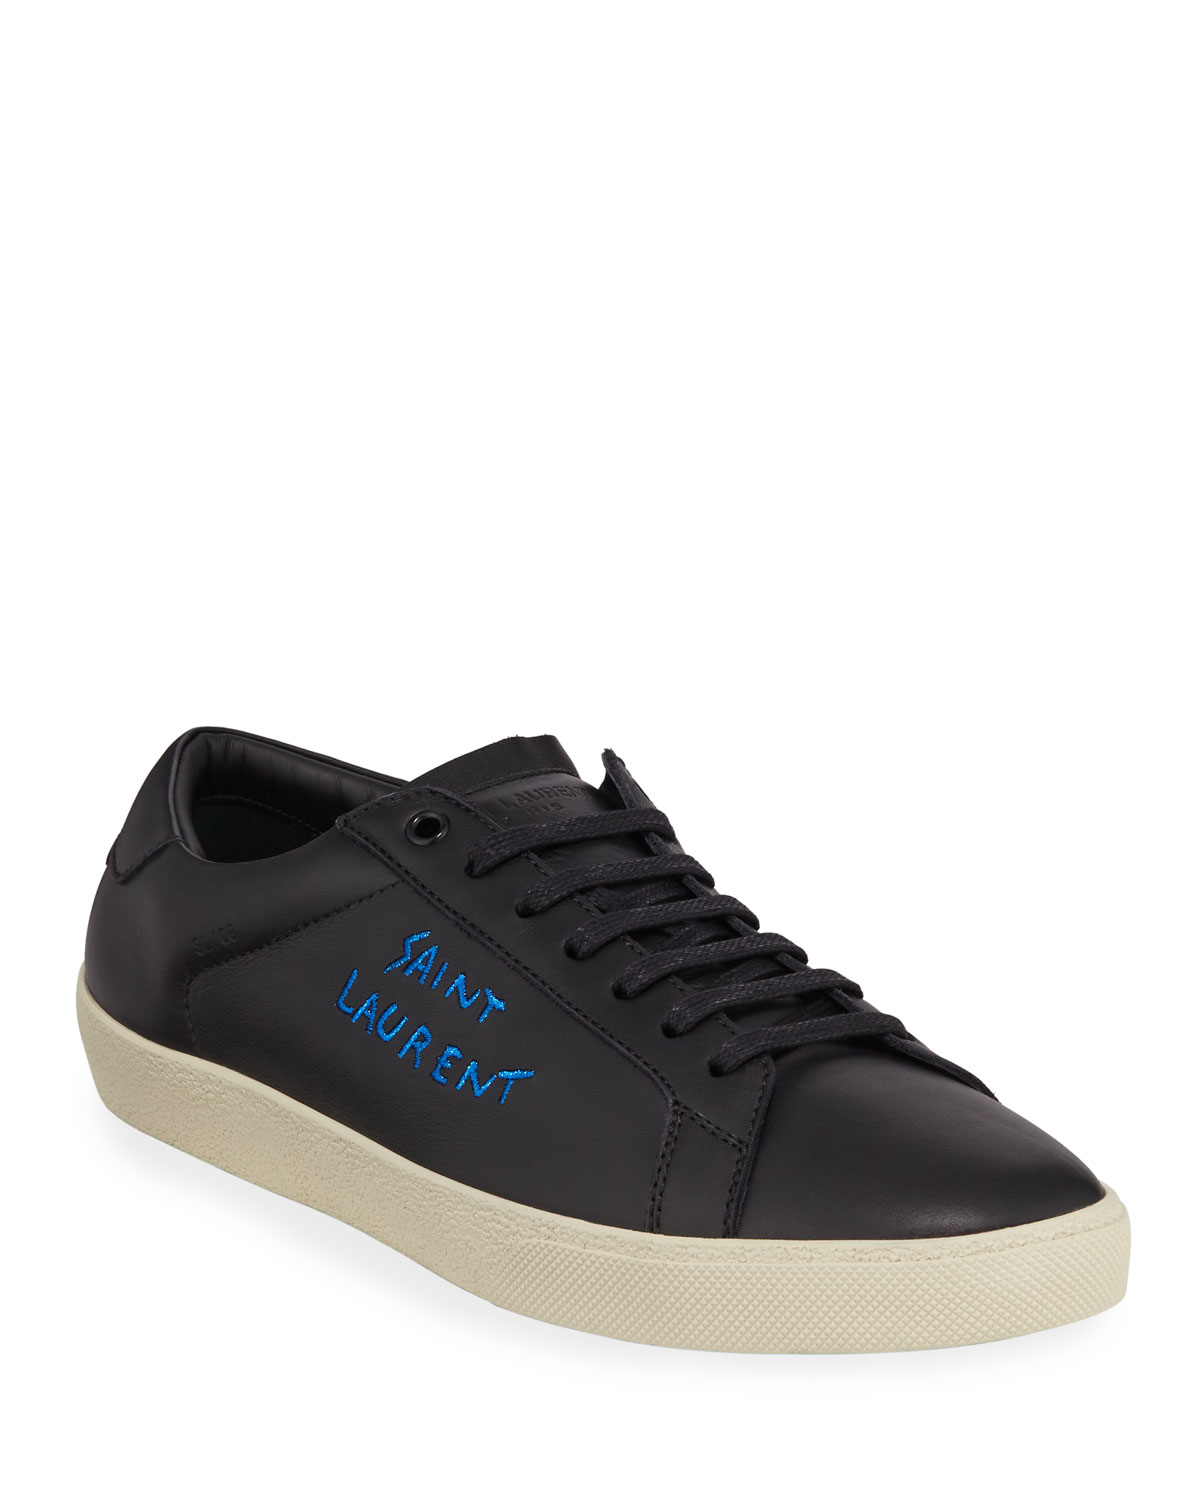 Saint Laurent Men's Leather Logo Low-Top Sneakers